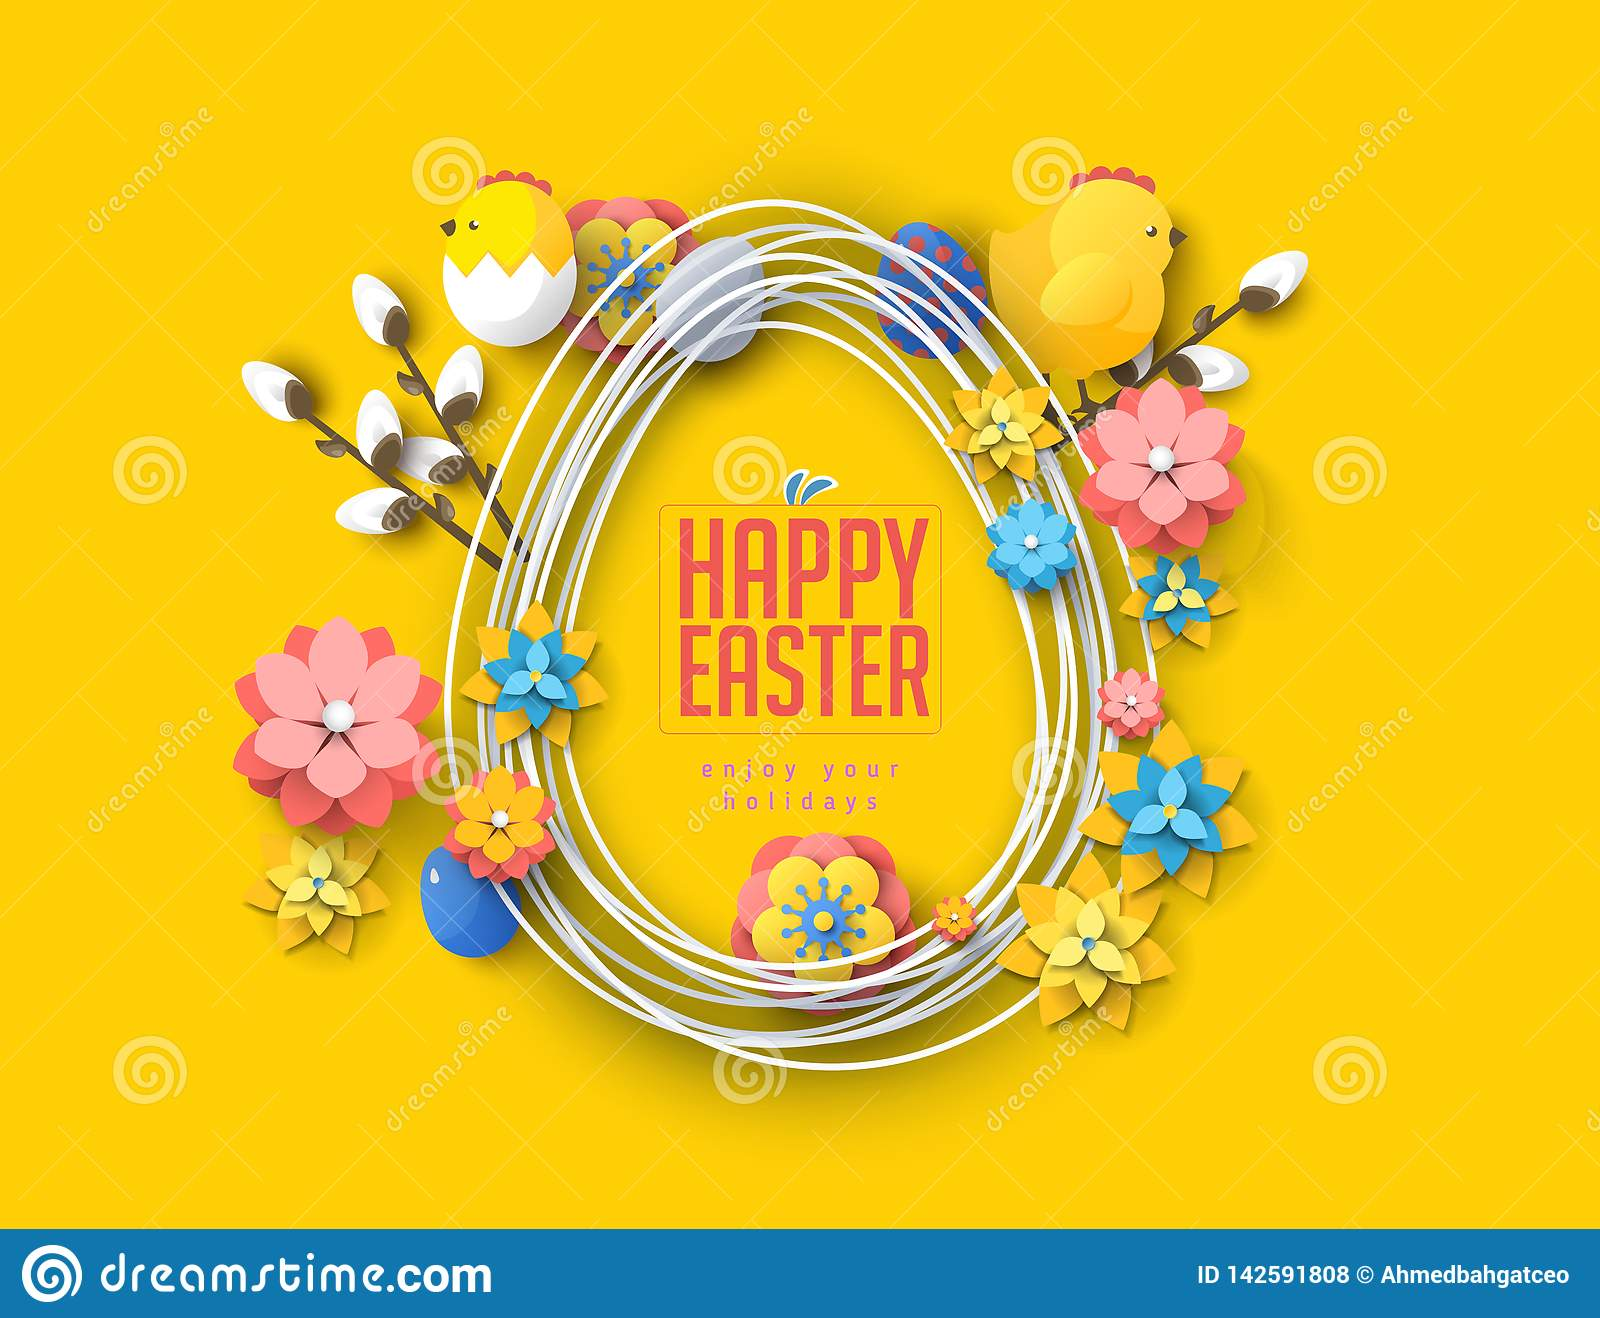 Easter concept banner flyer  colorful eggs rabbit abstract background texture